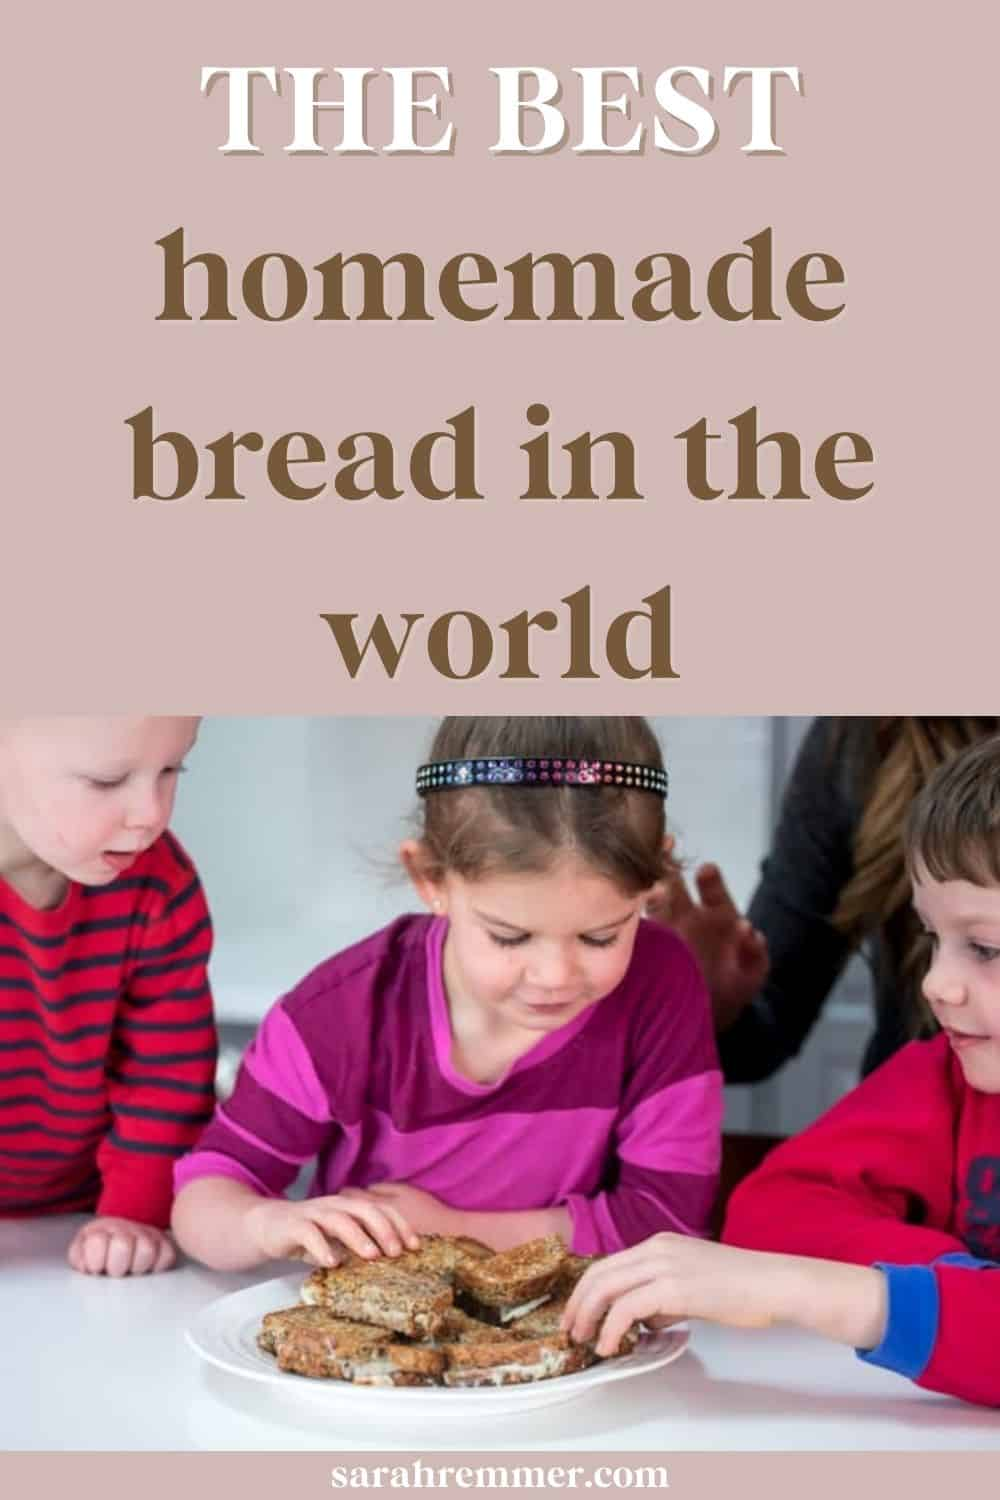 This bread was the only bread my grandmother consumed, and she made it every week! This homemade bread recipe is made with Red River cereal. This dietitian mom loves it, and so do my three kids!